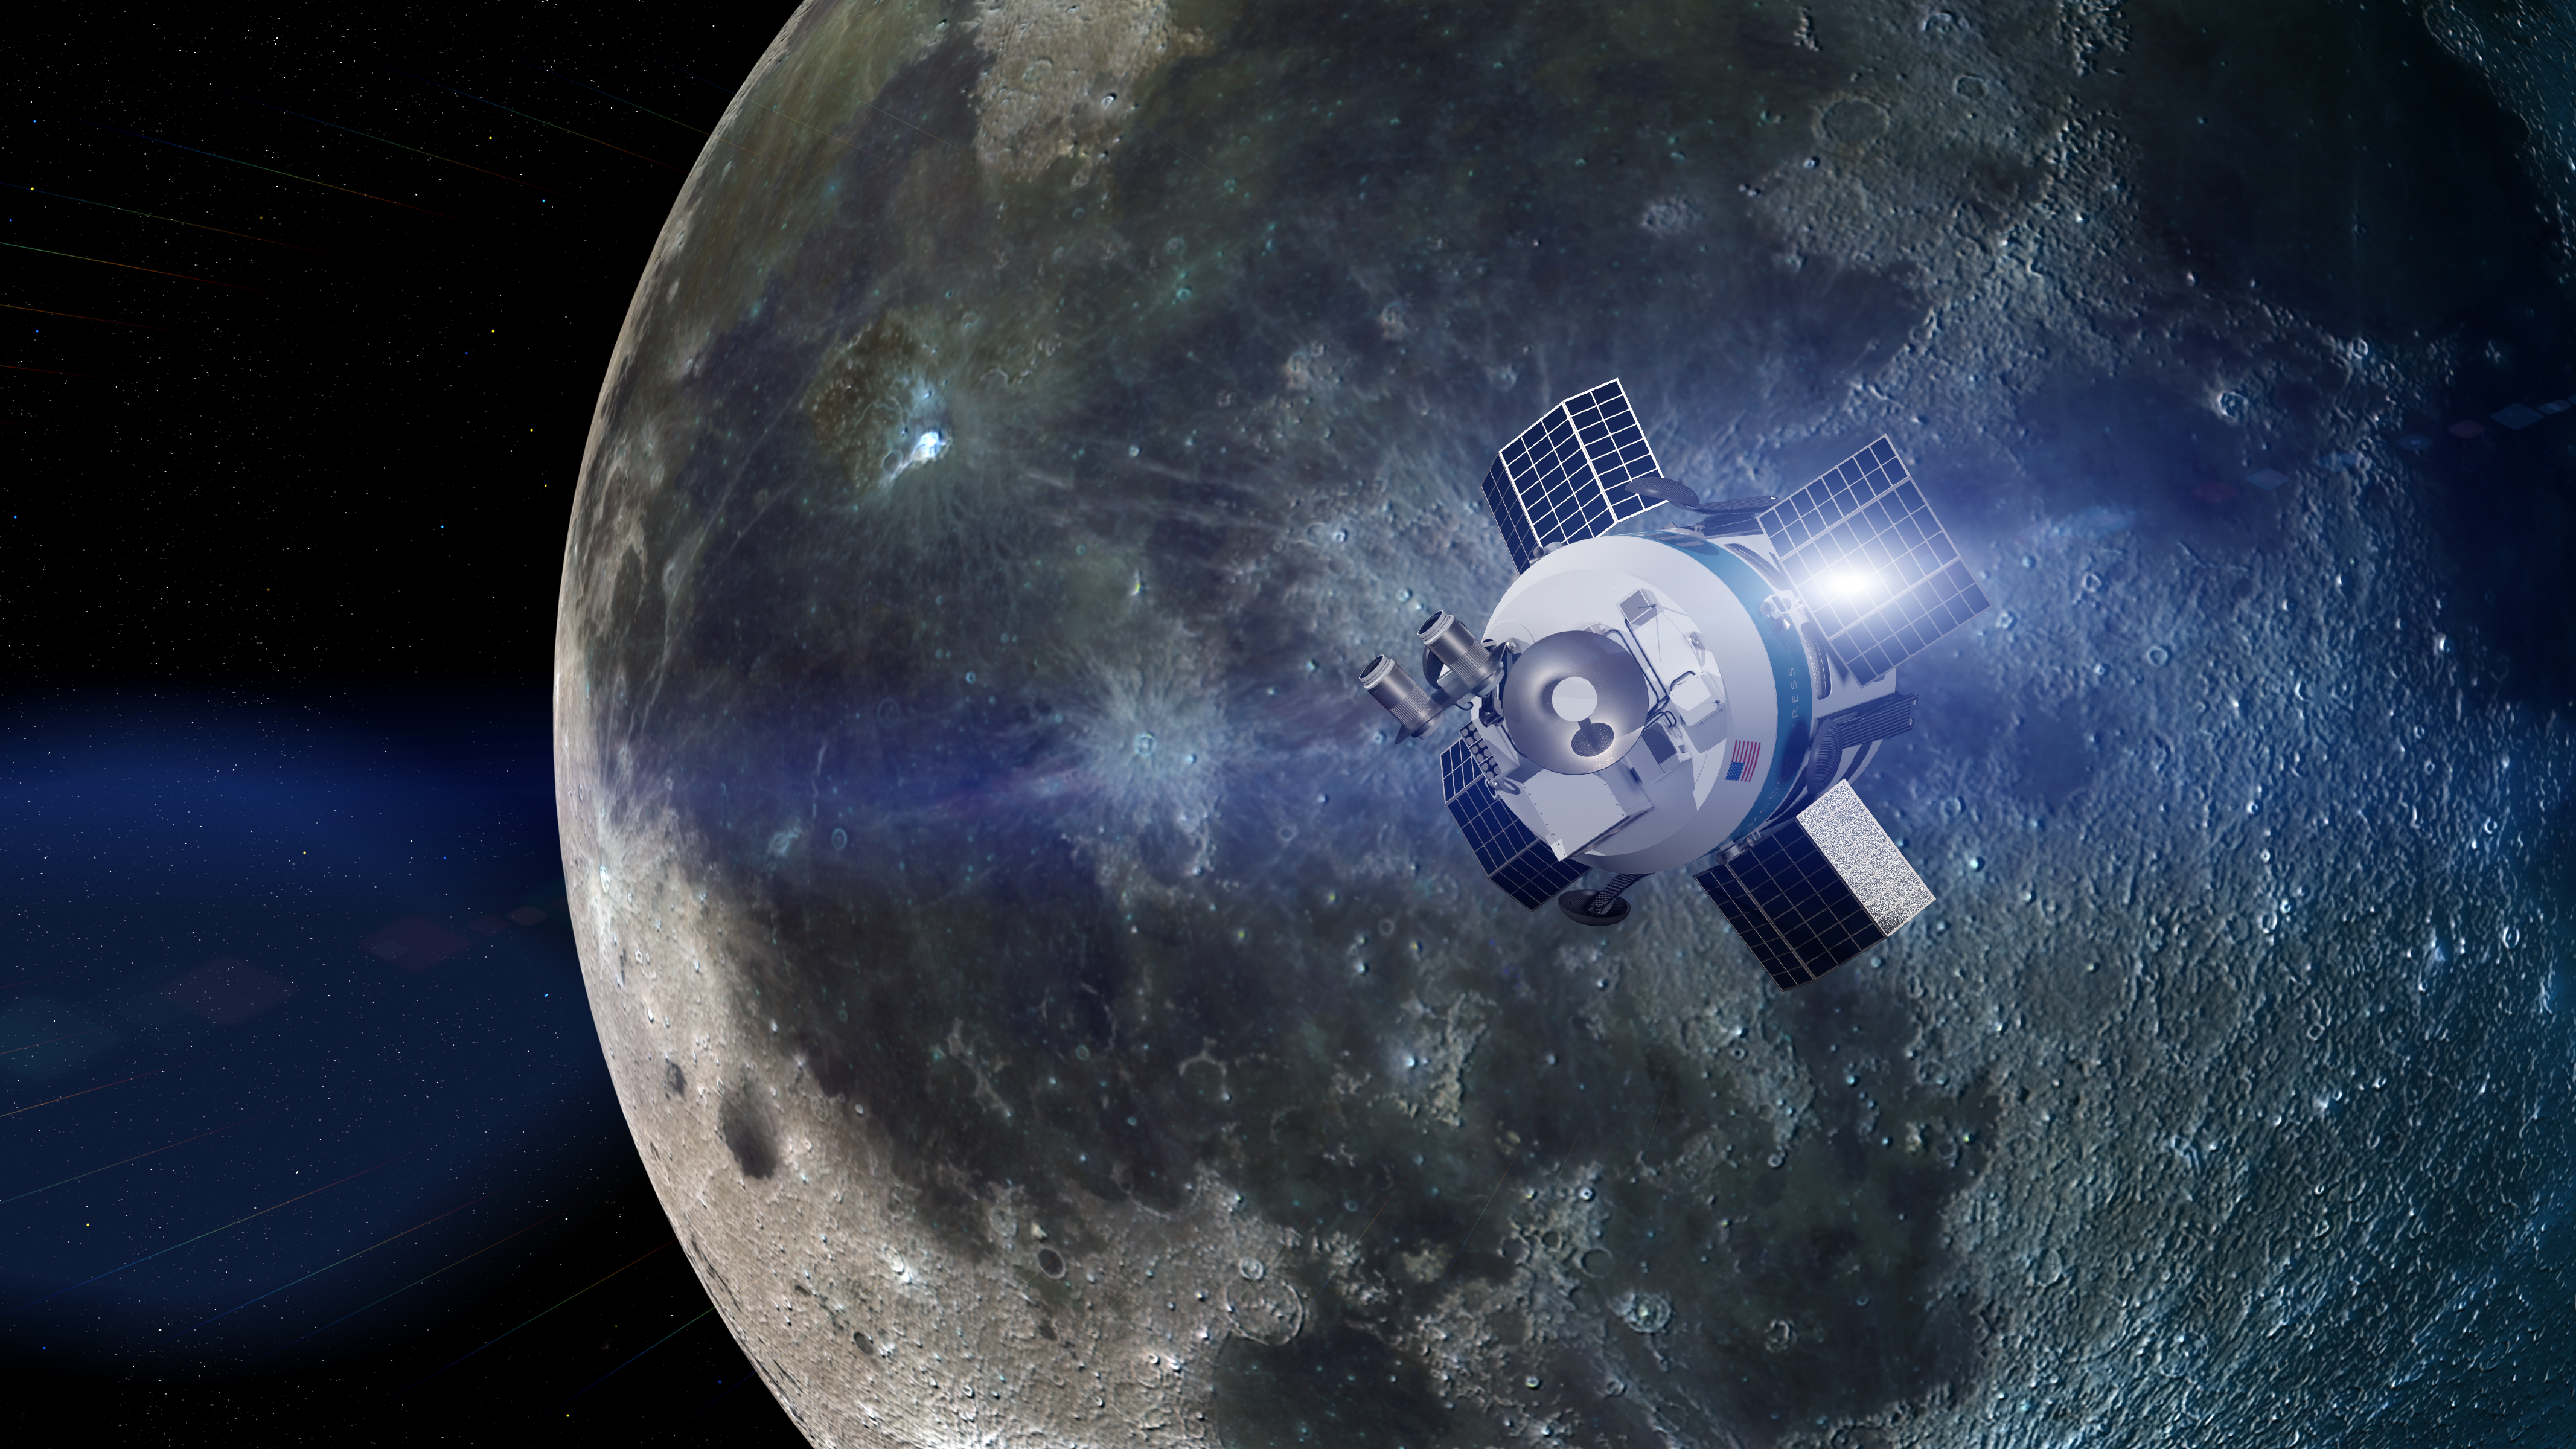 For the first time in history, a private expedition will go to the moon